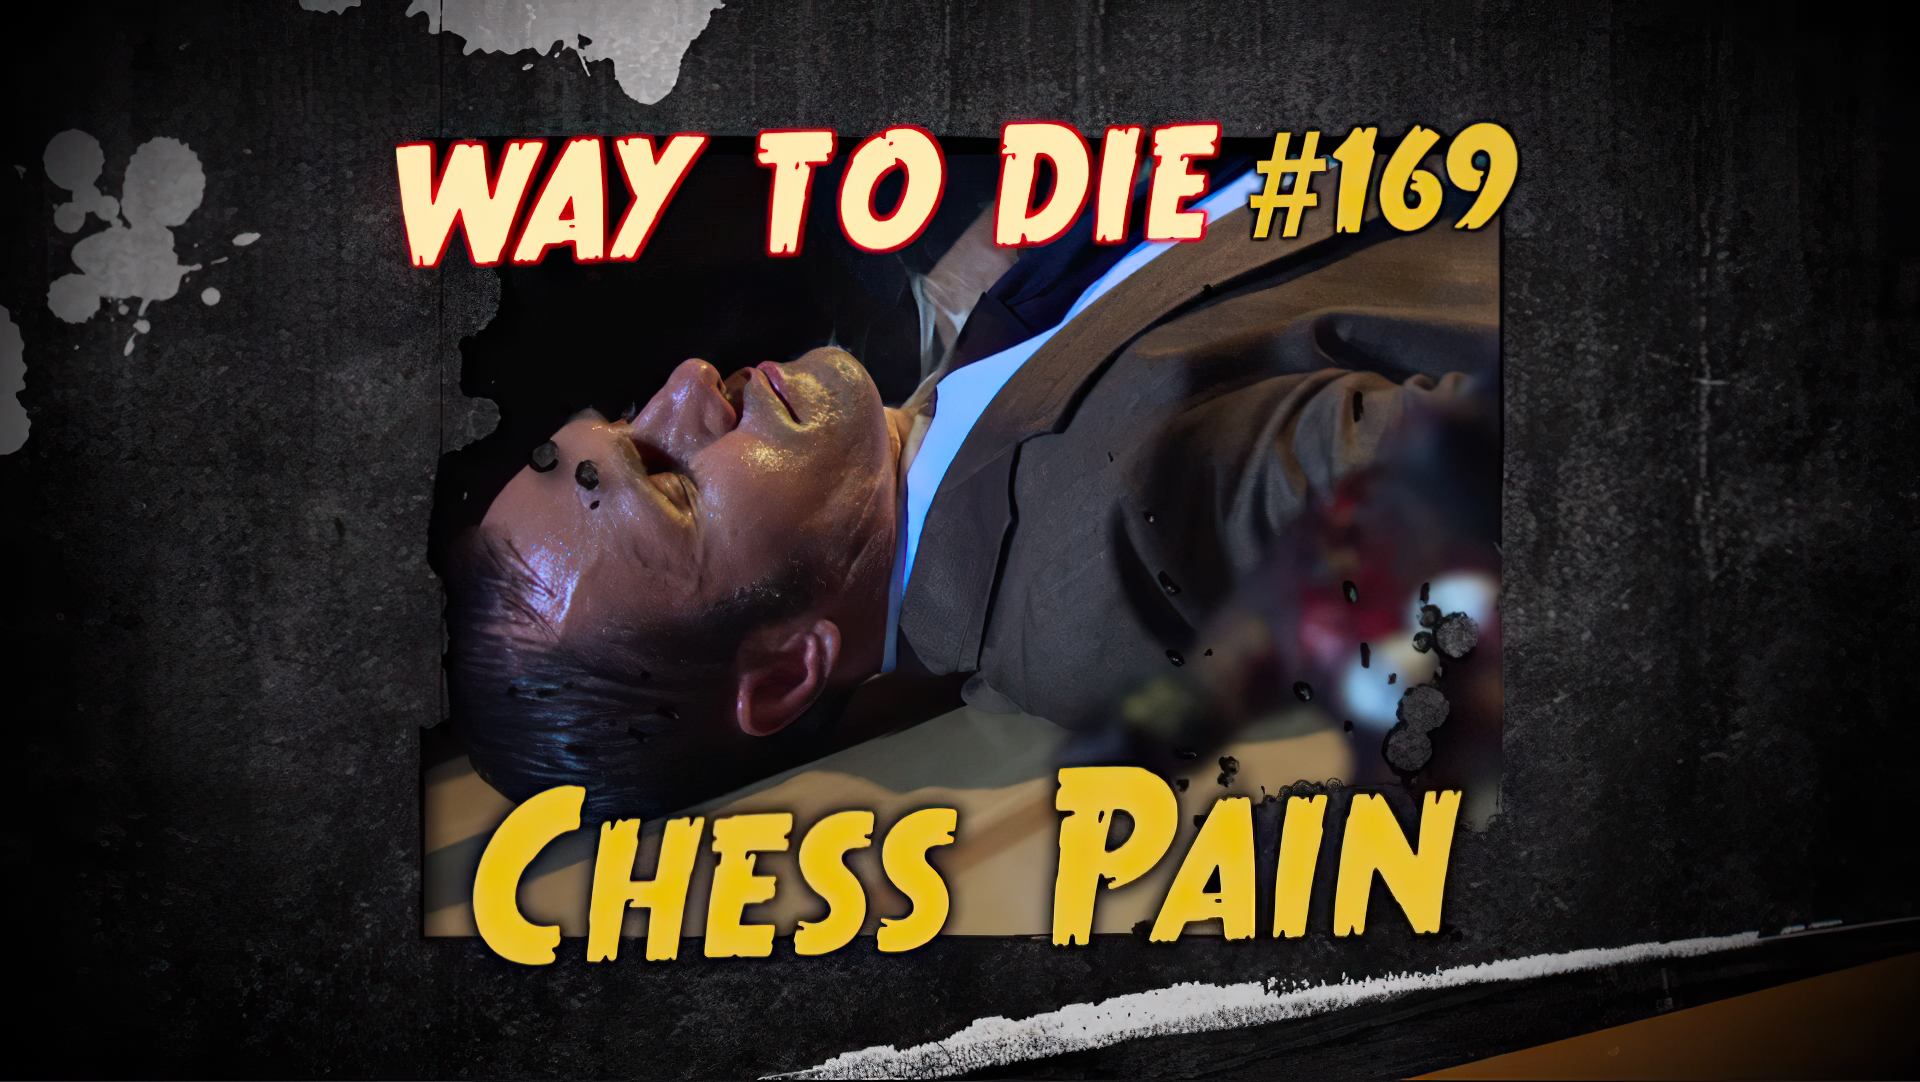 Chess Pain